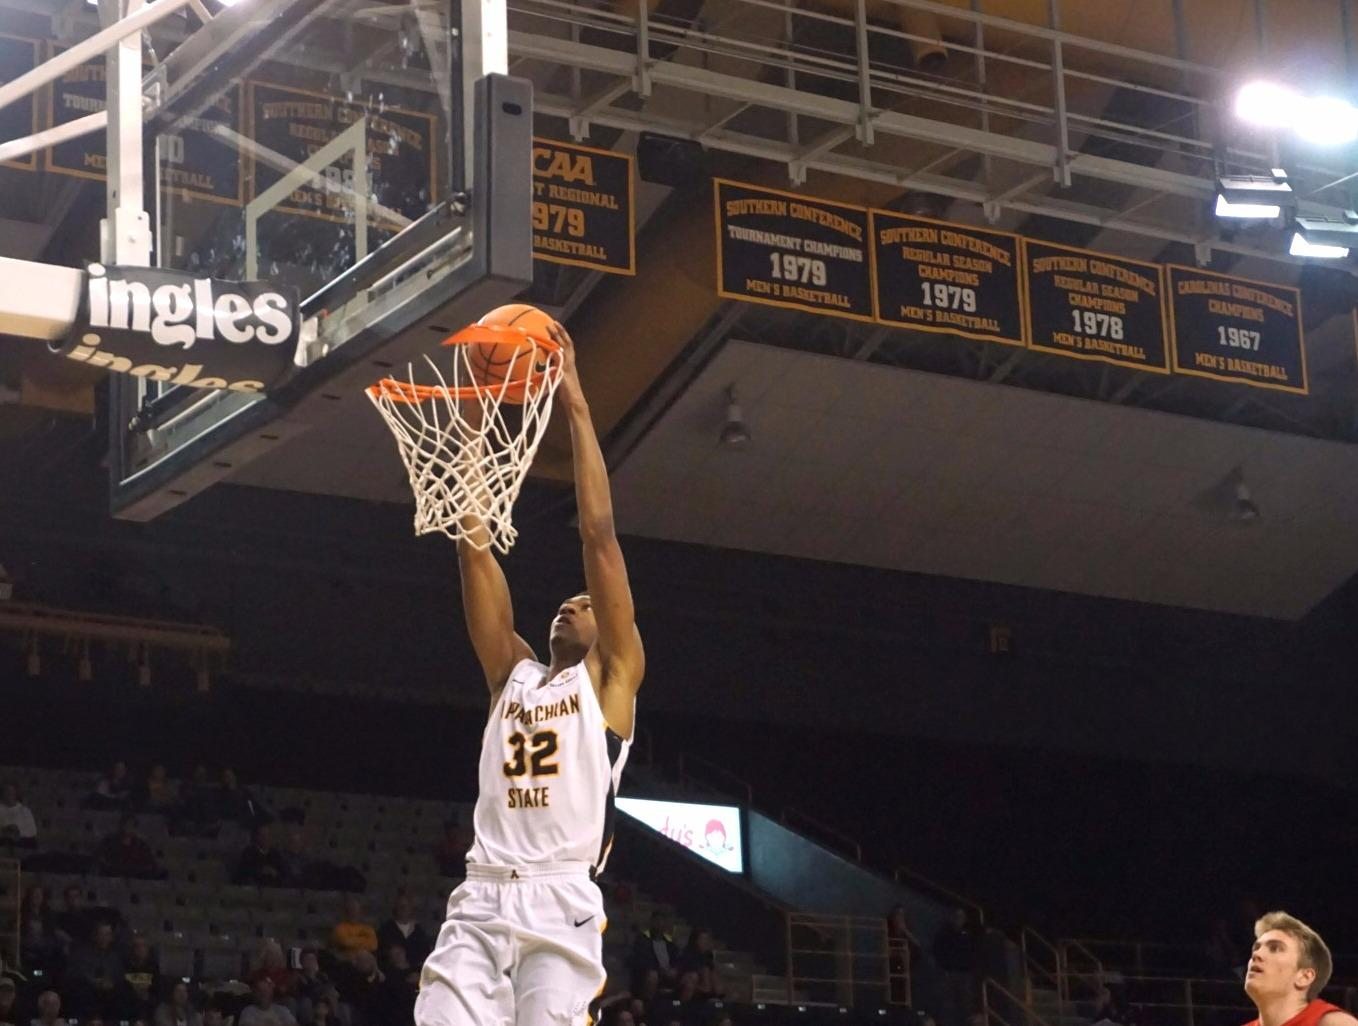 Tyrell Johnson going up for the two-handed slam after a steal